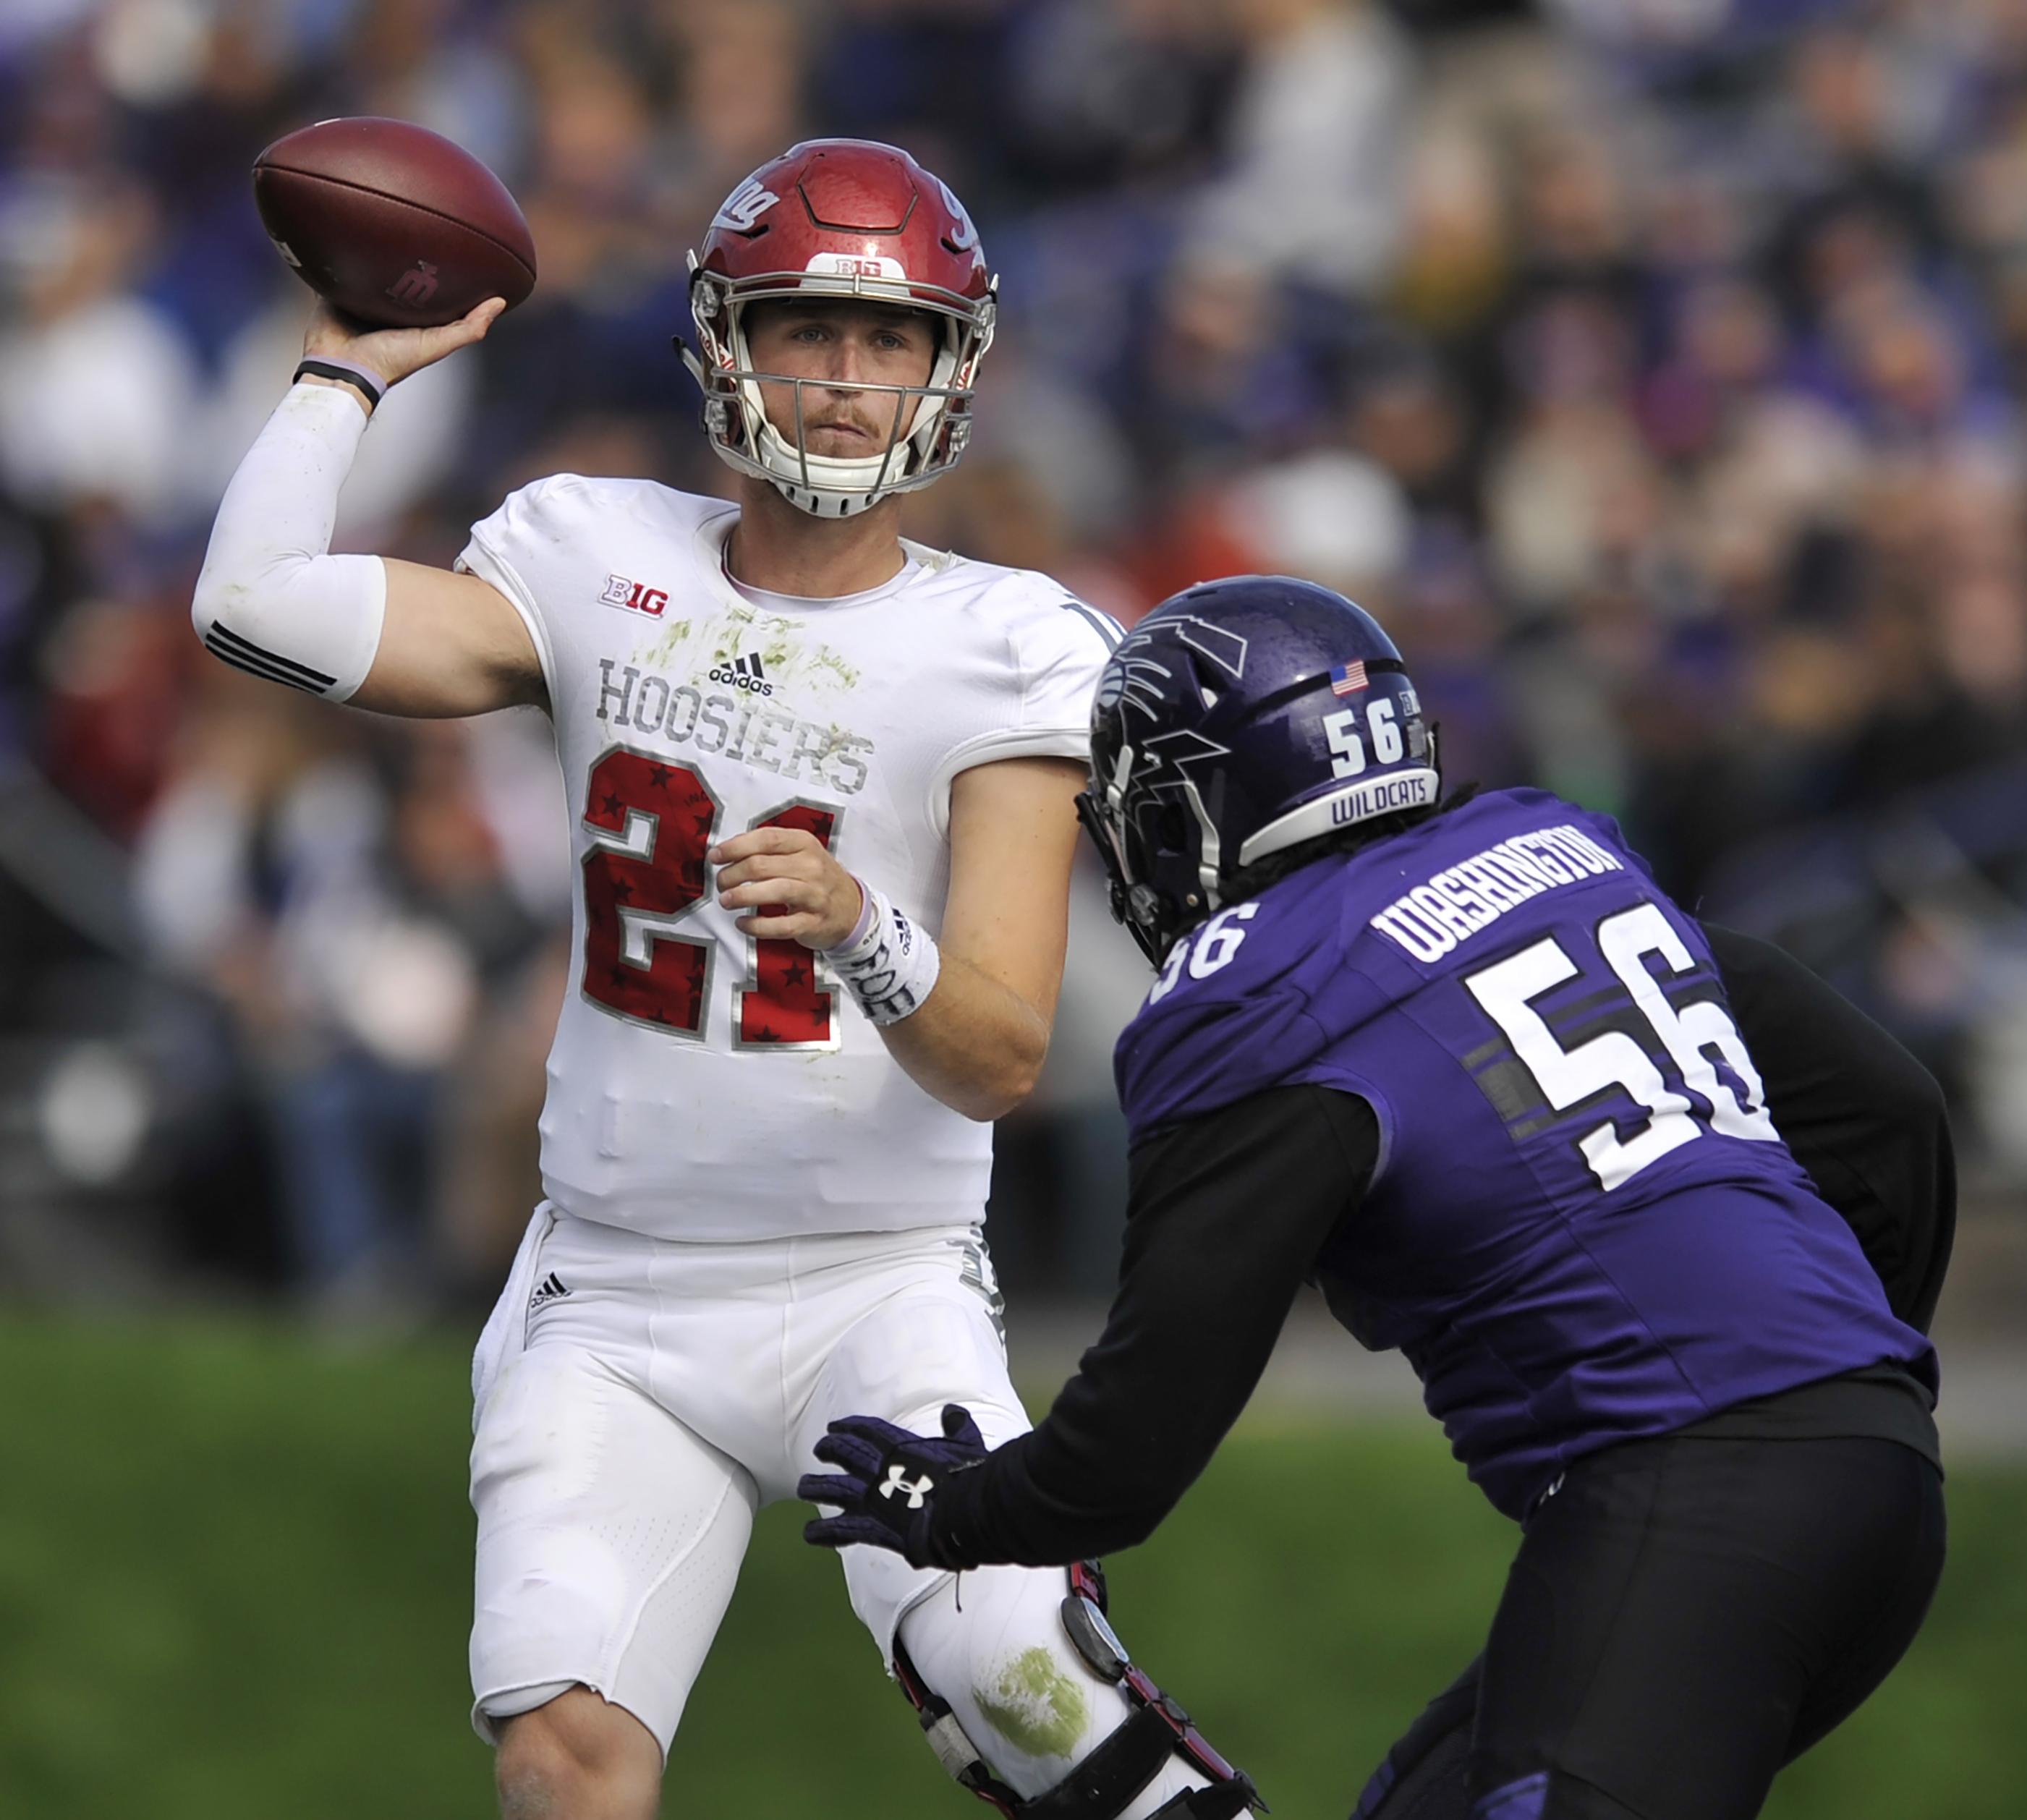 Indiana quarterback Richard Lagow (21) throws a pass against Northwestern's Xavier Washington (56) during the third quarter of an NCAA college football game Saturday, Oct. 22, 2016, in Evanston, Ill. (AP Photo/Paul Beaty)